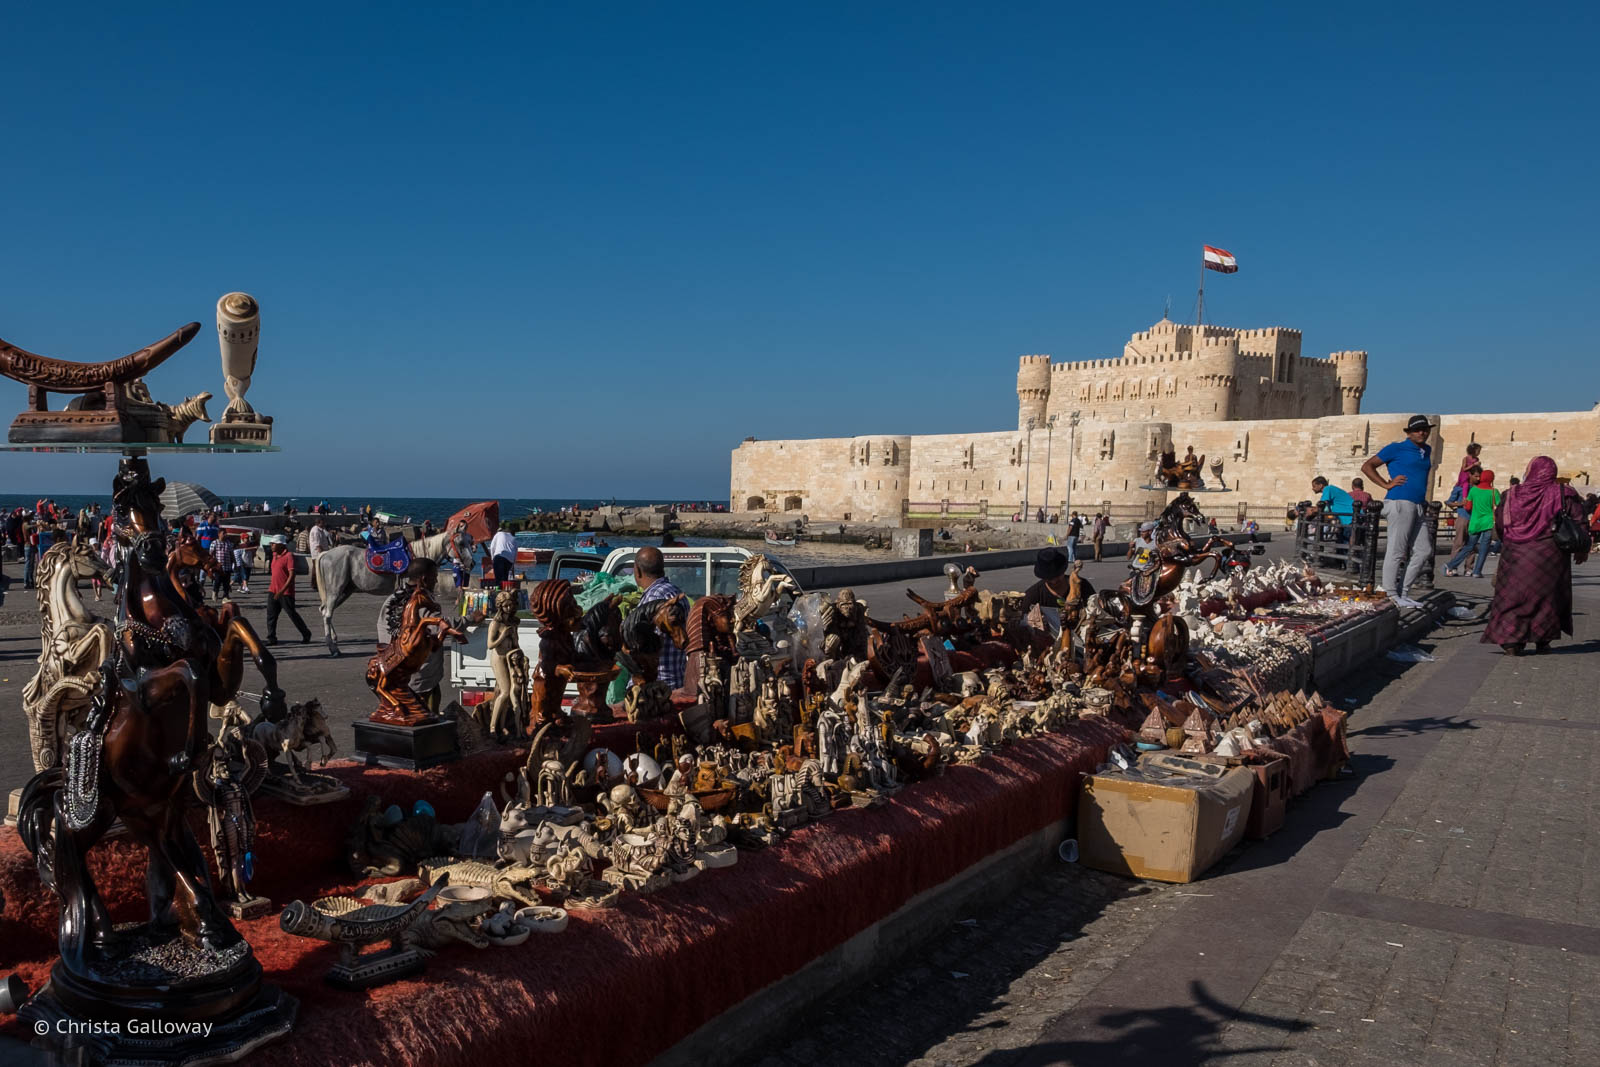 The outside of Qaitbay Citadel (which closes at 4pm)